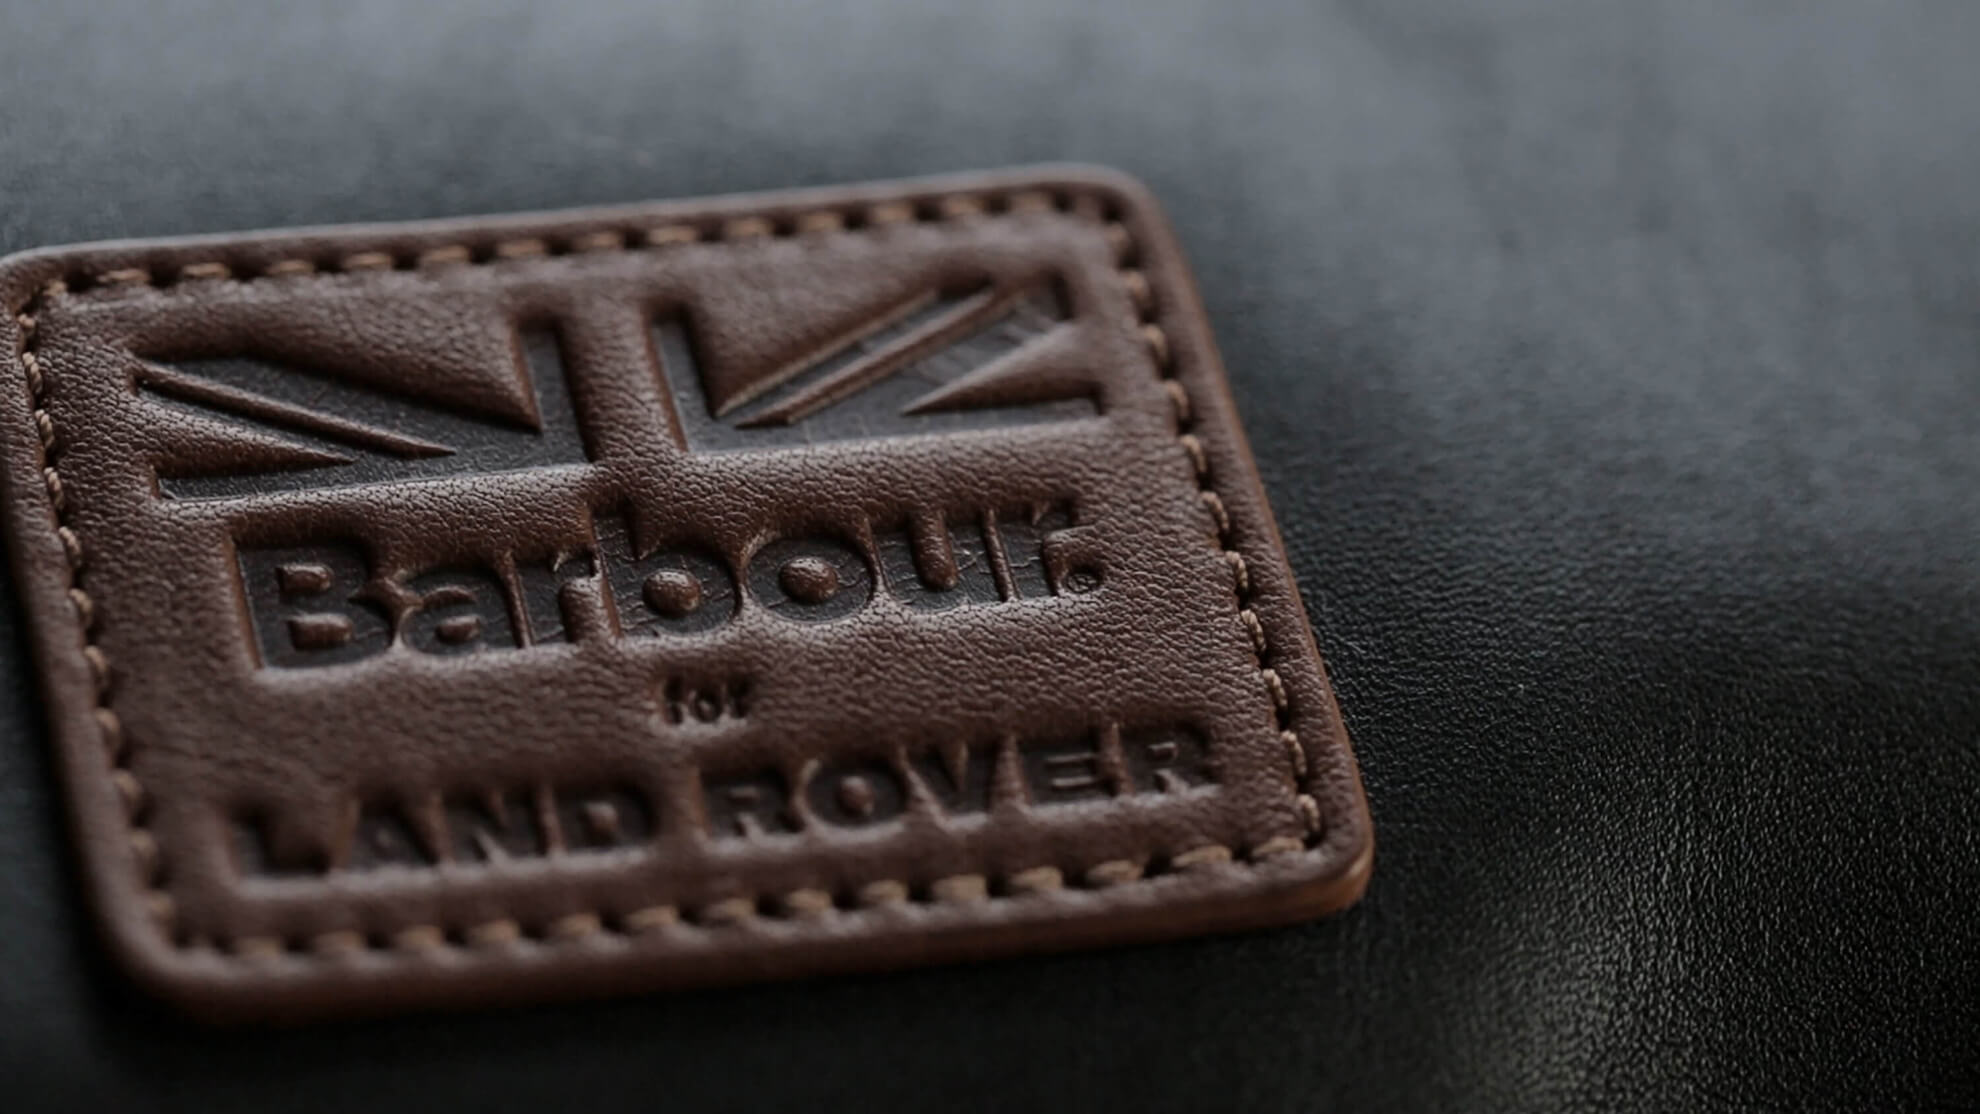 Barbour, Land Rover, Fashion, Collection, England, British, Brand, Agency, Photography, Bag, Patch